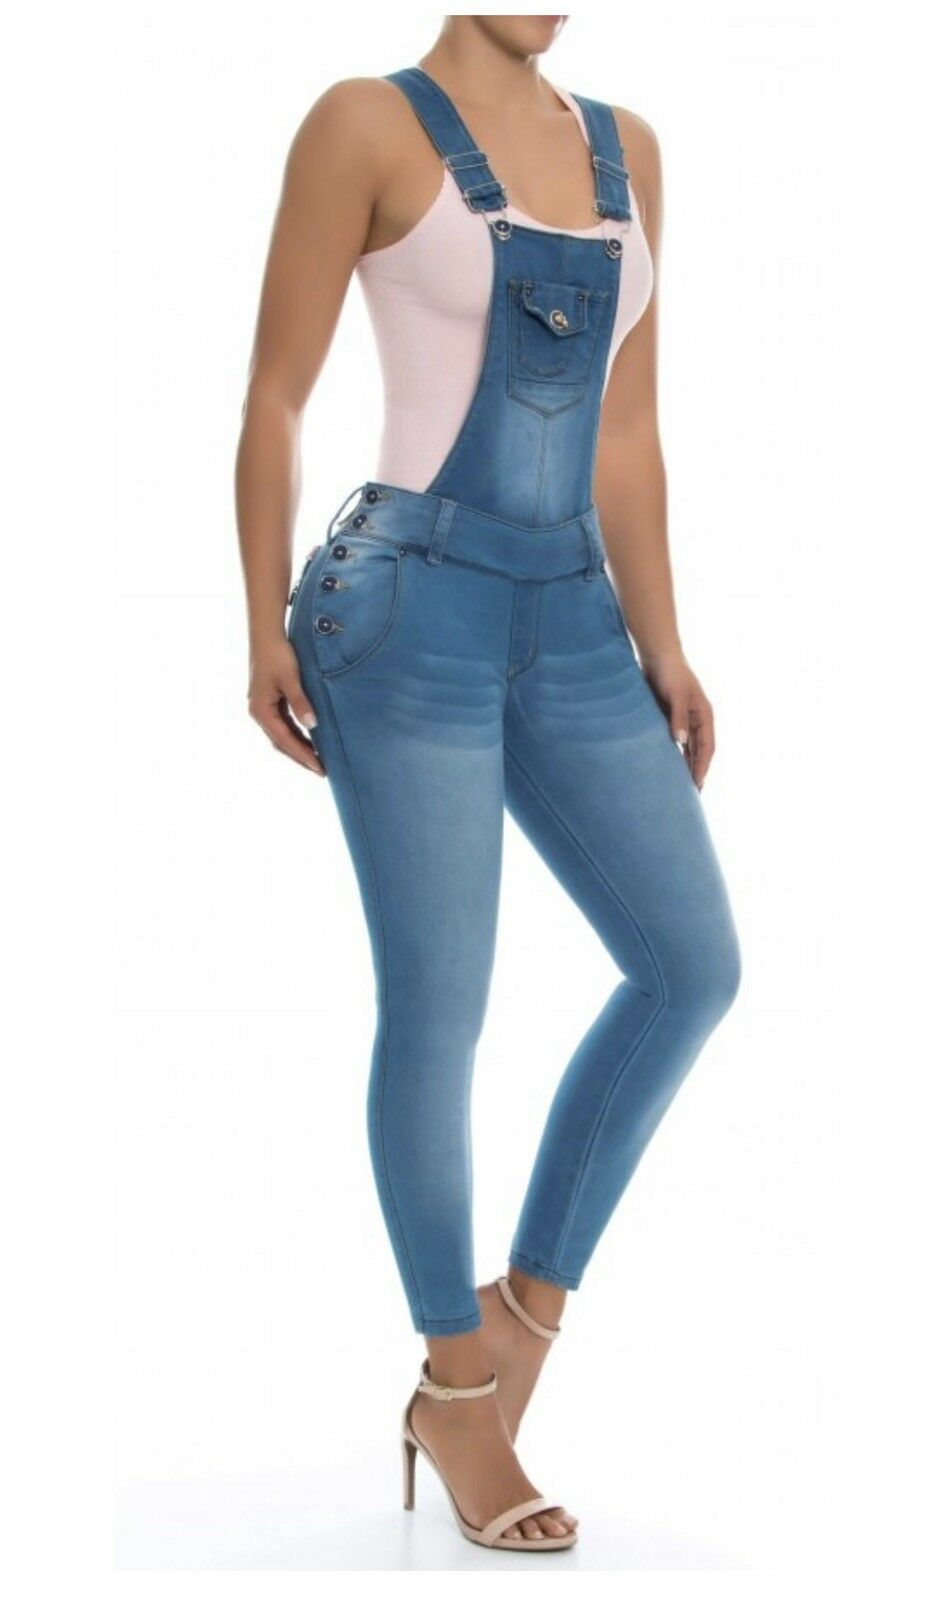 56a6c306314 Stretchy Colombian Enterizos Jumpsuits New Collection Size Available 1